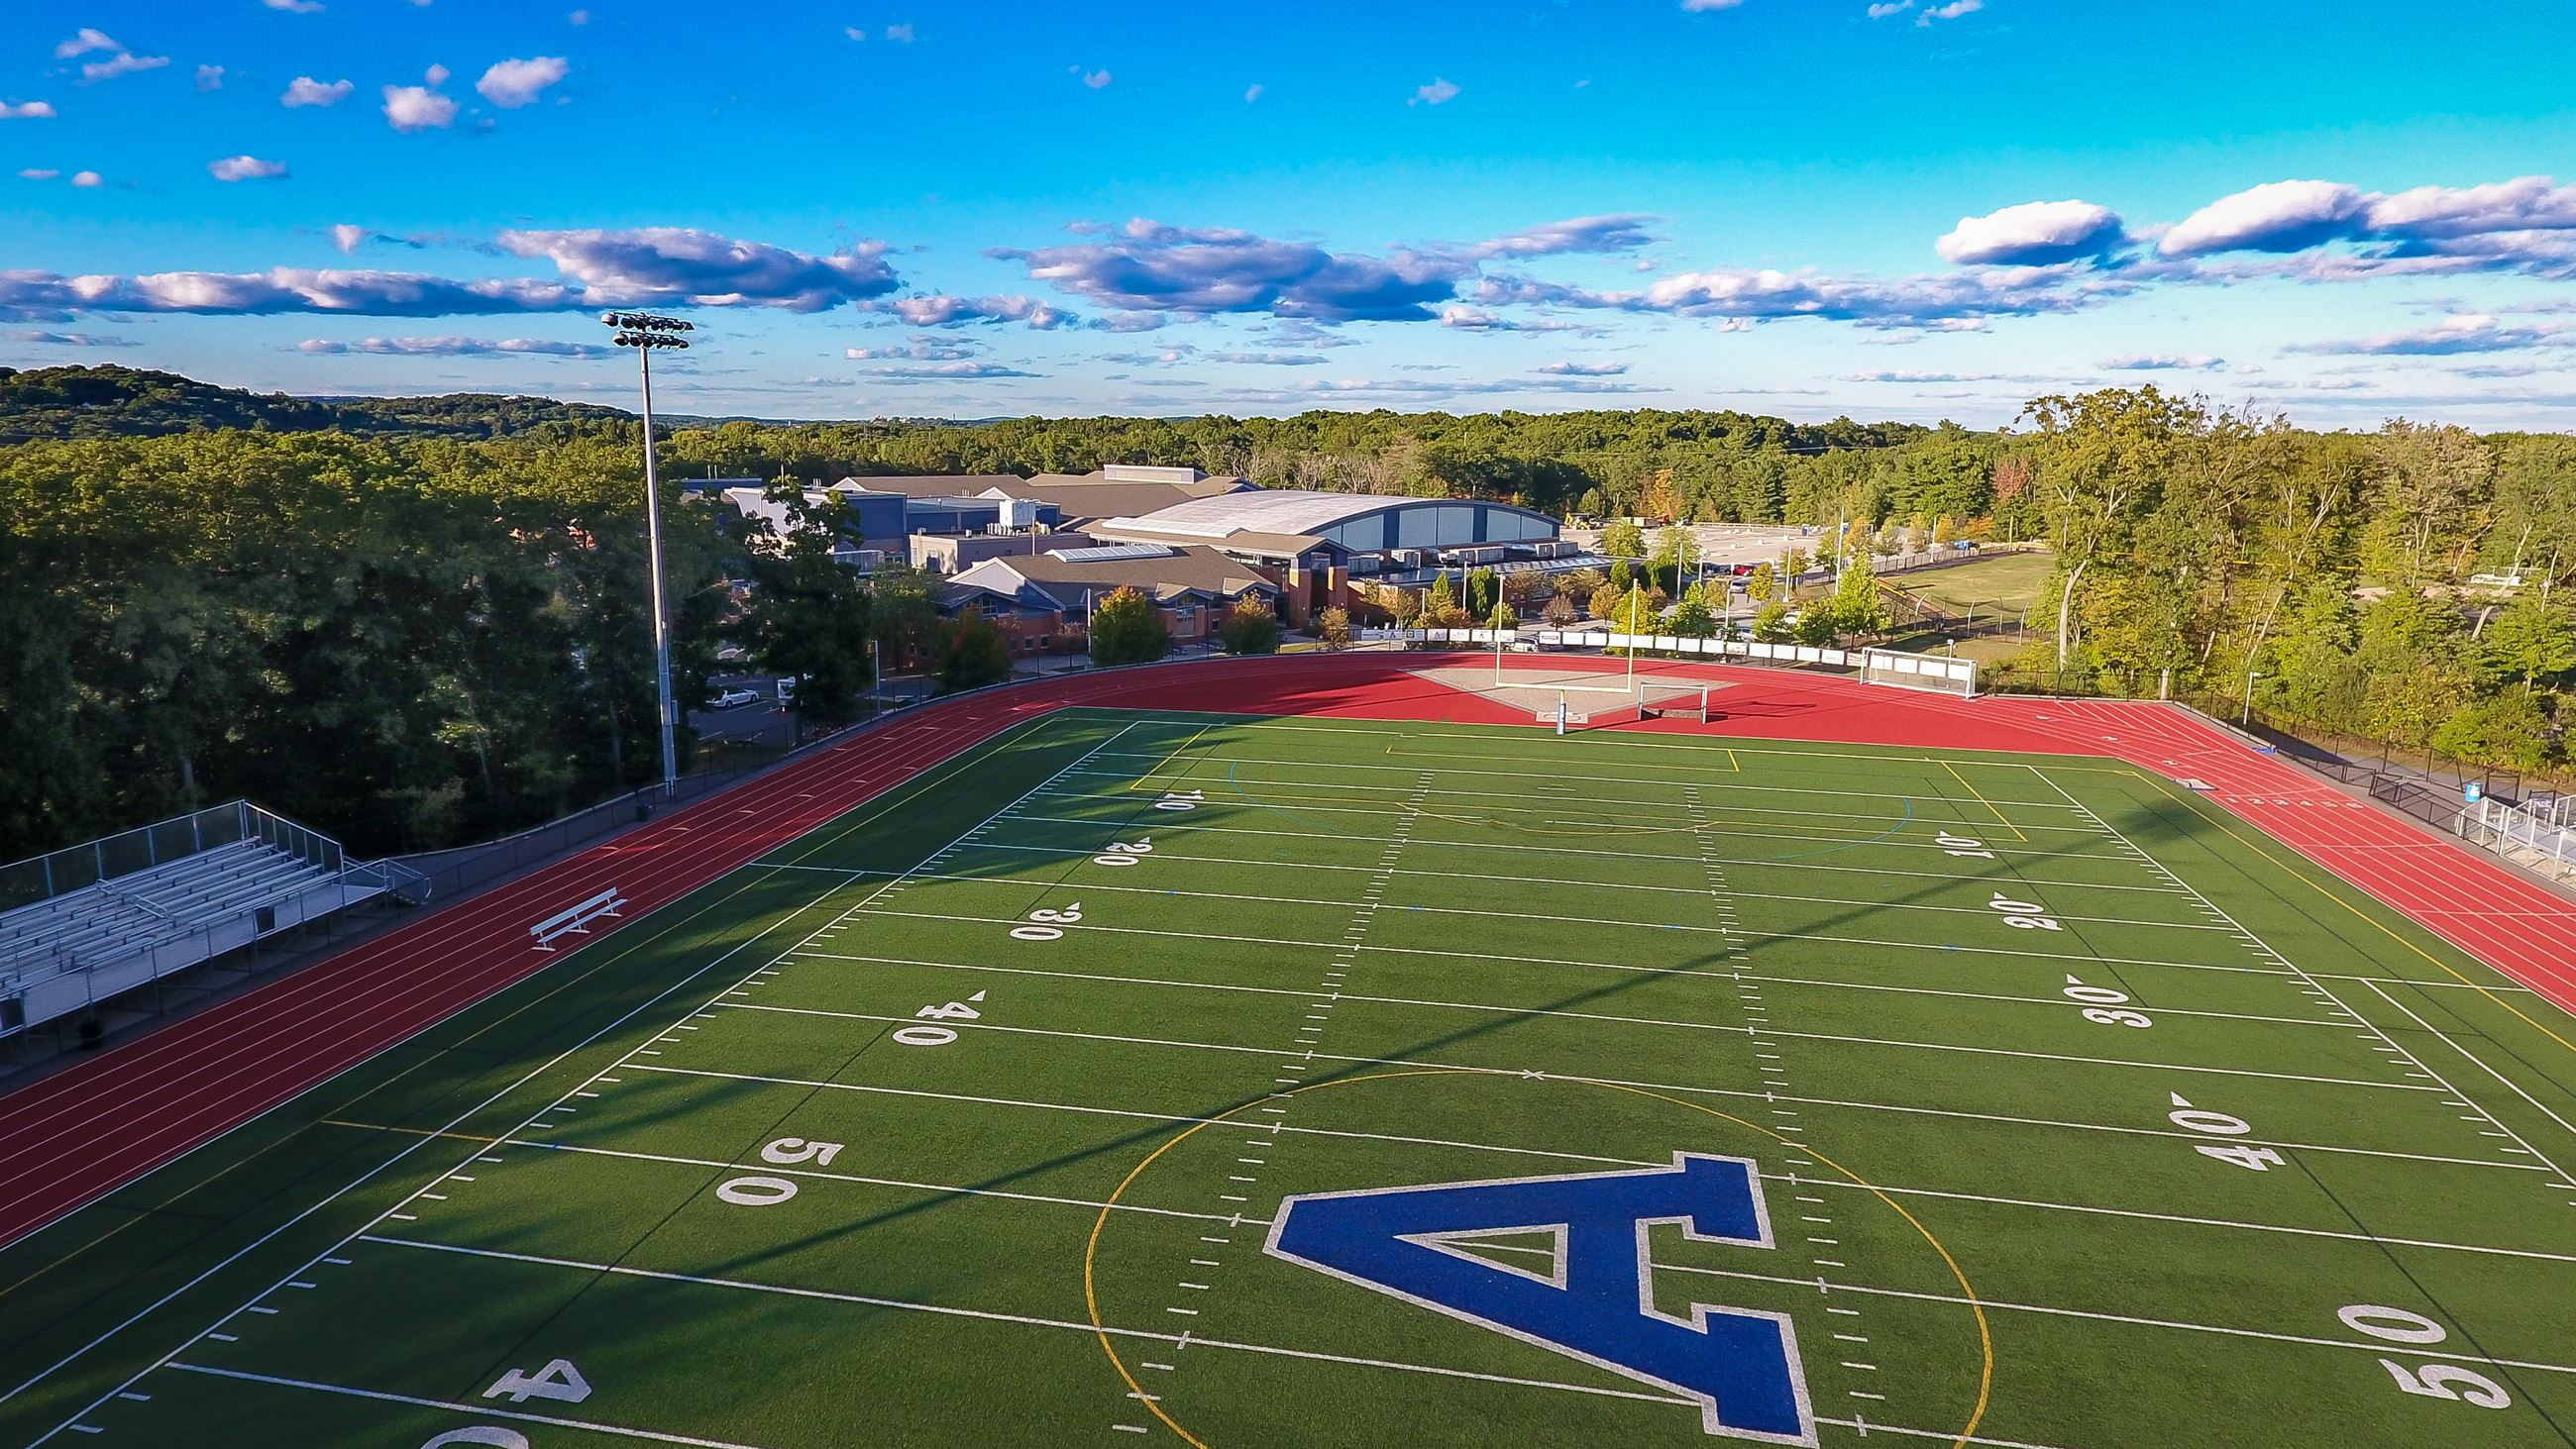 Ashland_high school field-3